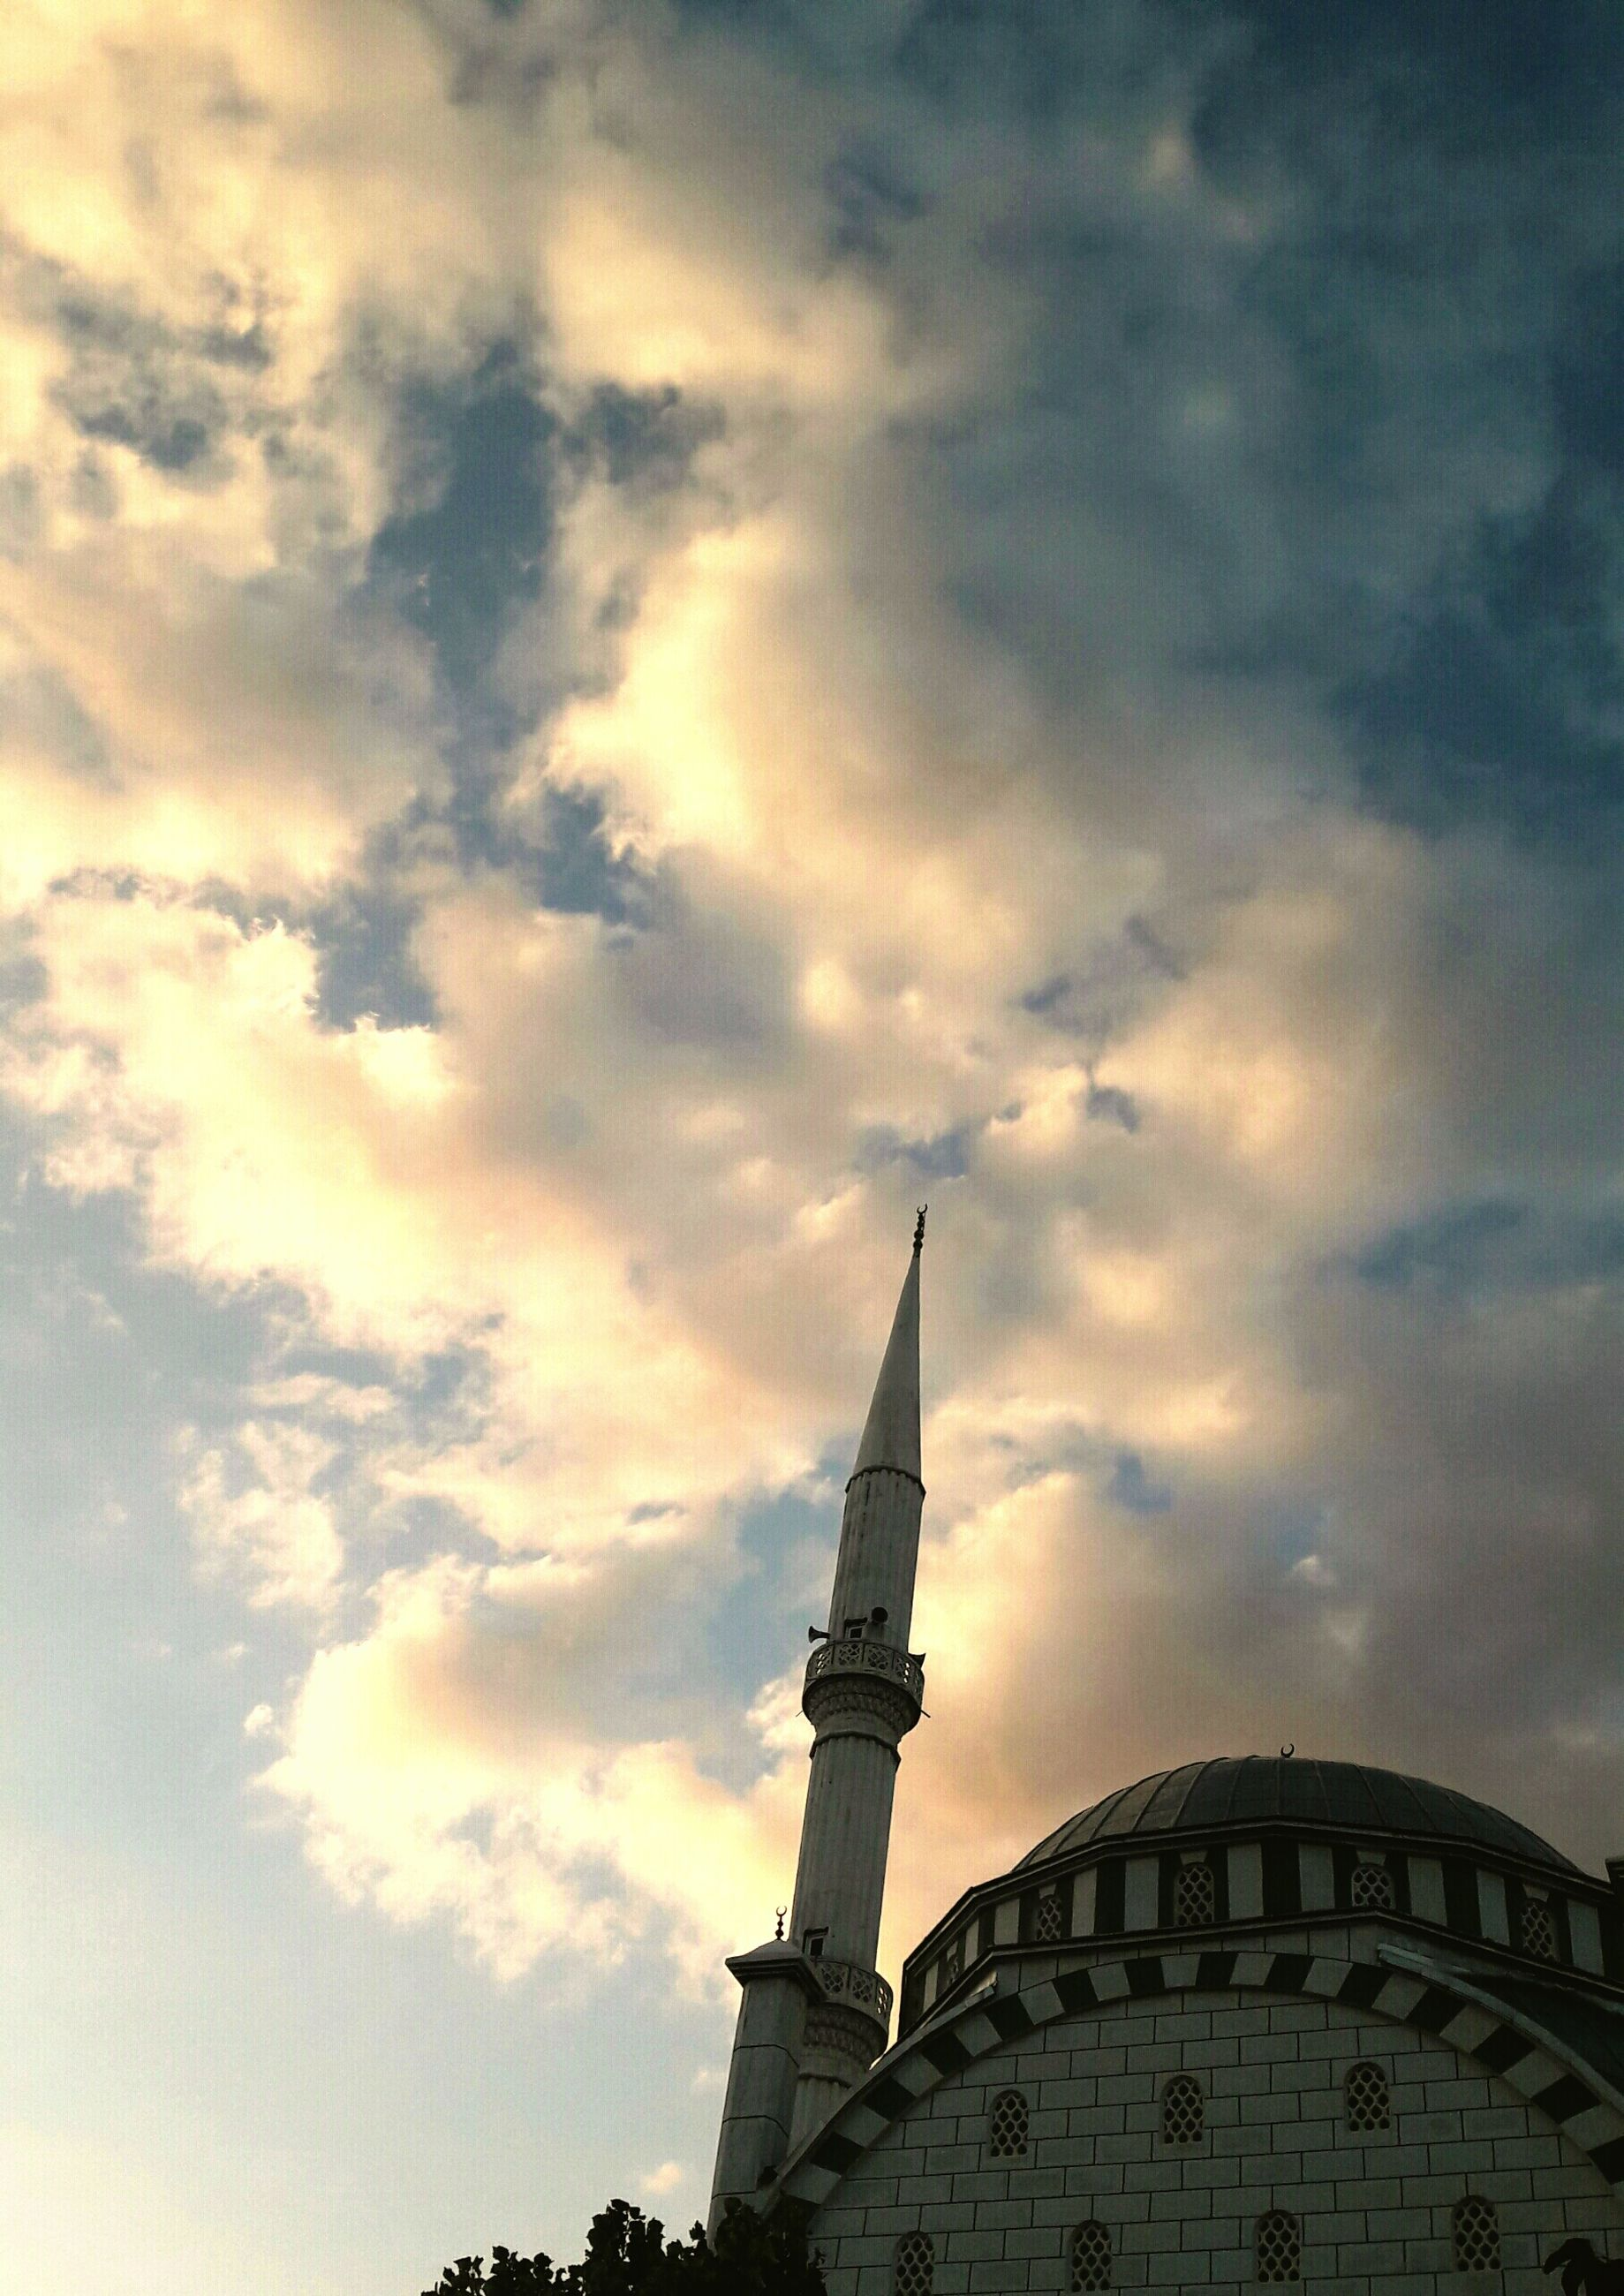 low angle view, architecture, sky, built structure, cloud - sky, building exterior, cloudy, cloud, tower, high section, famous place, travel destinations, outdoors, religion, place of worship, international landmark, travel, no people, sunset, tall - high